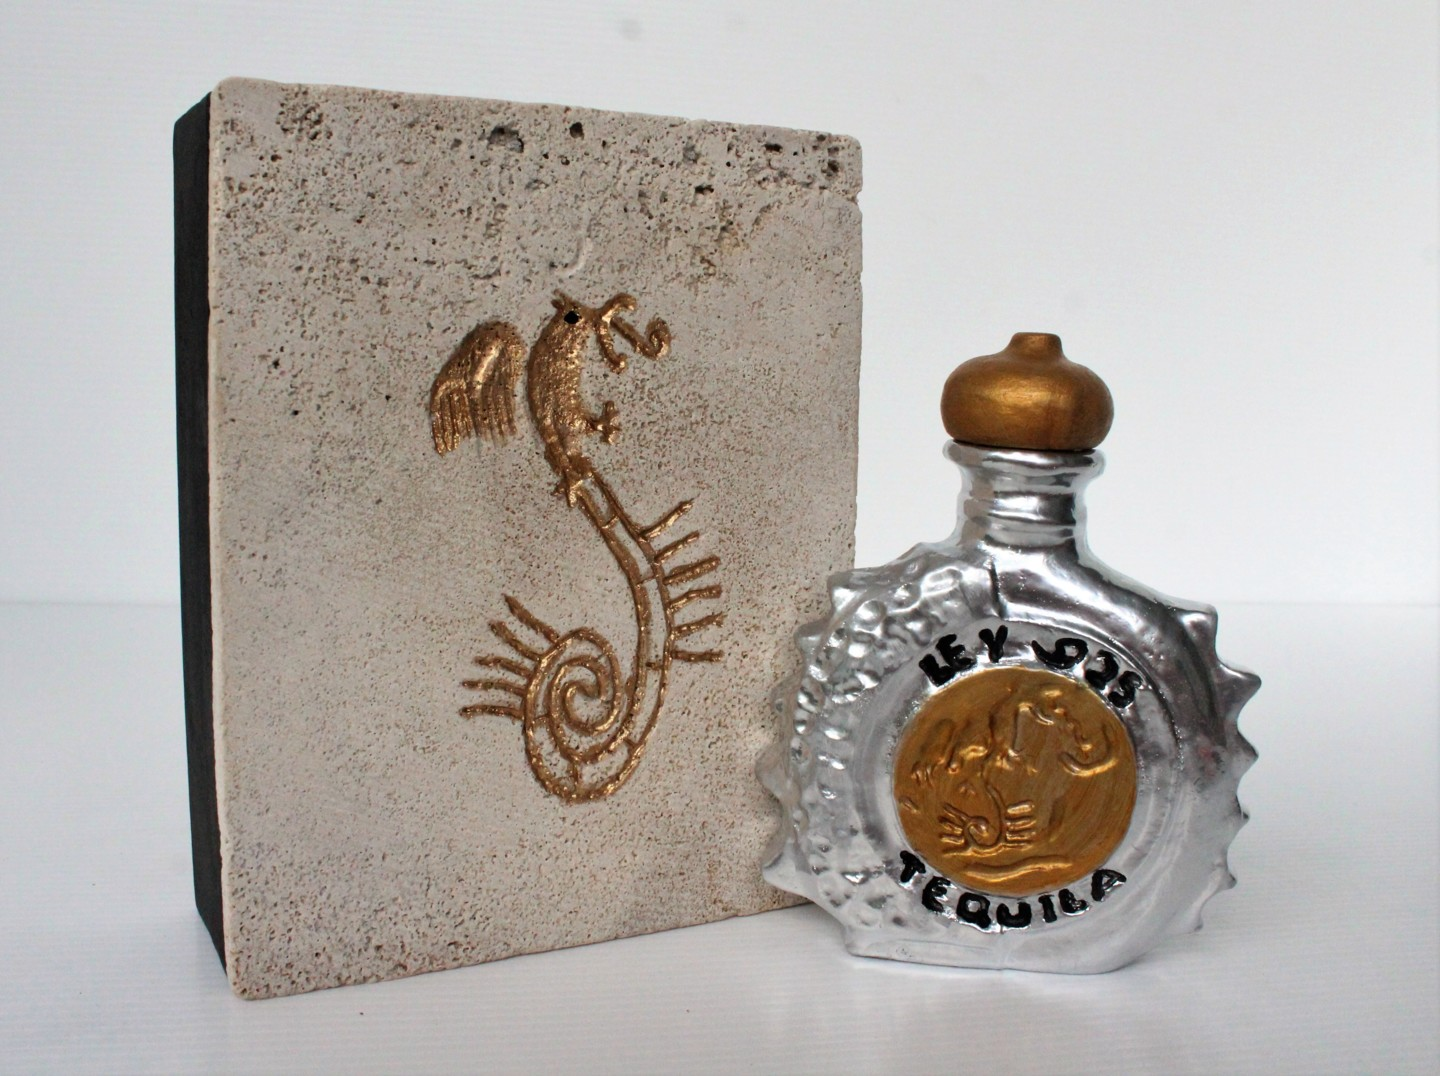 Tequila Ley 925, Escultura por Jenny Hee   The Top 10 Most Expensive Alcohols In 2021 - BiographyFlash.com